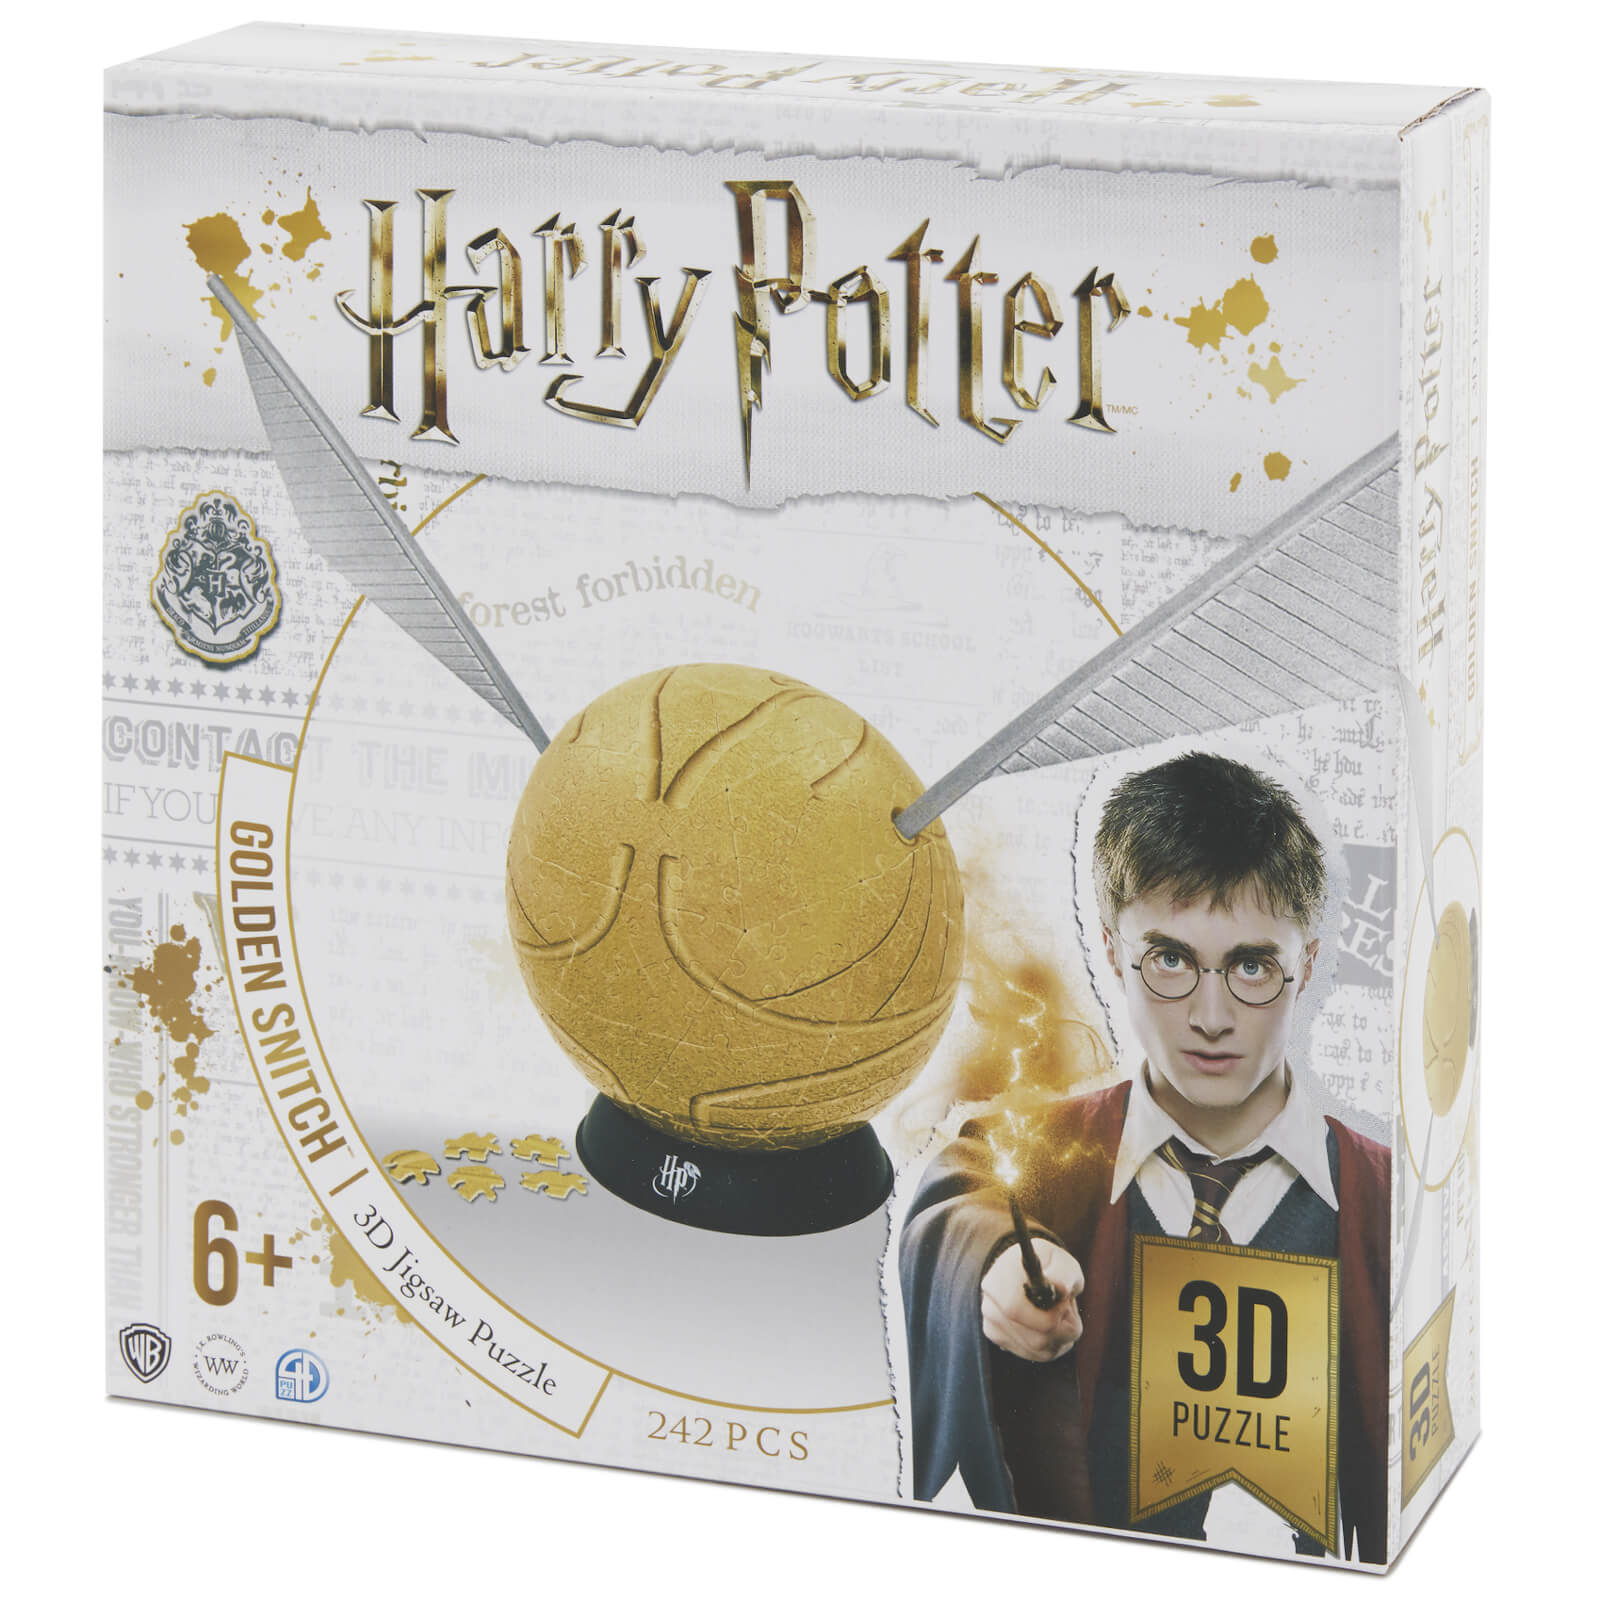 Image of Harry Potter 6 Inch Golden Snitch 3D Puzzle (242 Pieces)